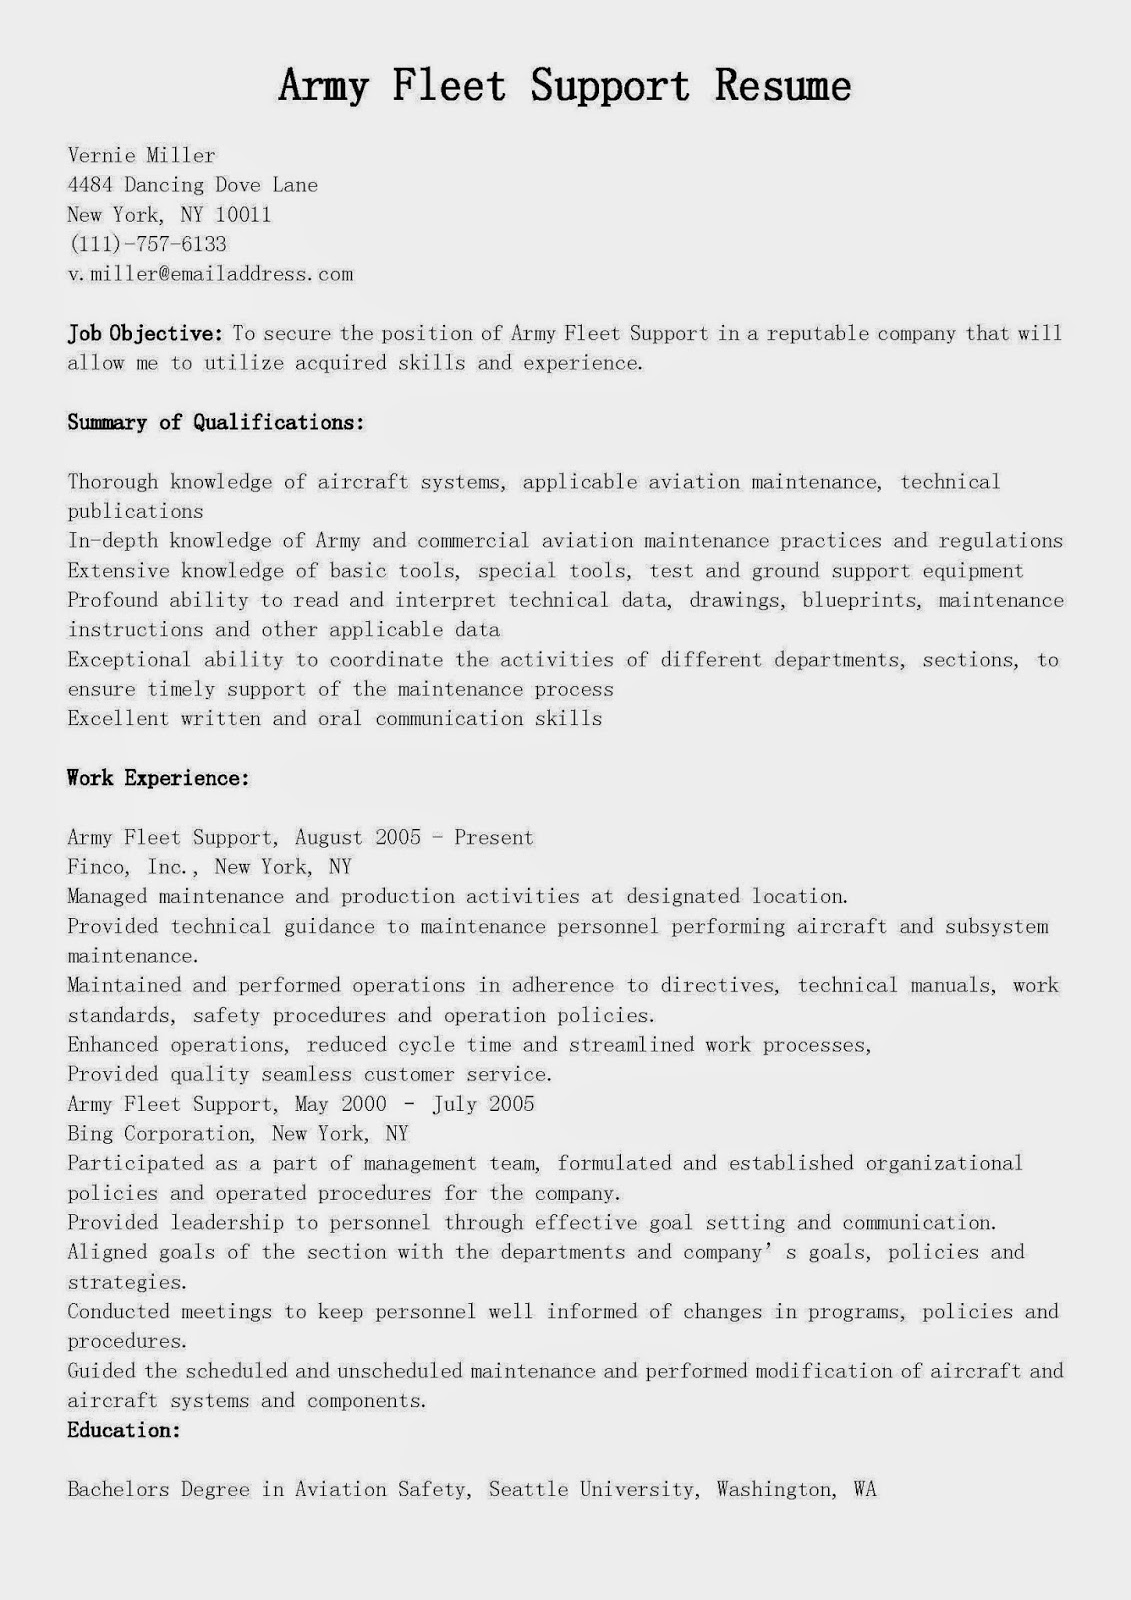 resume samples  army fleet support resume sample